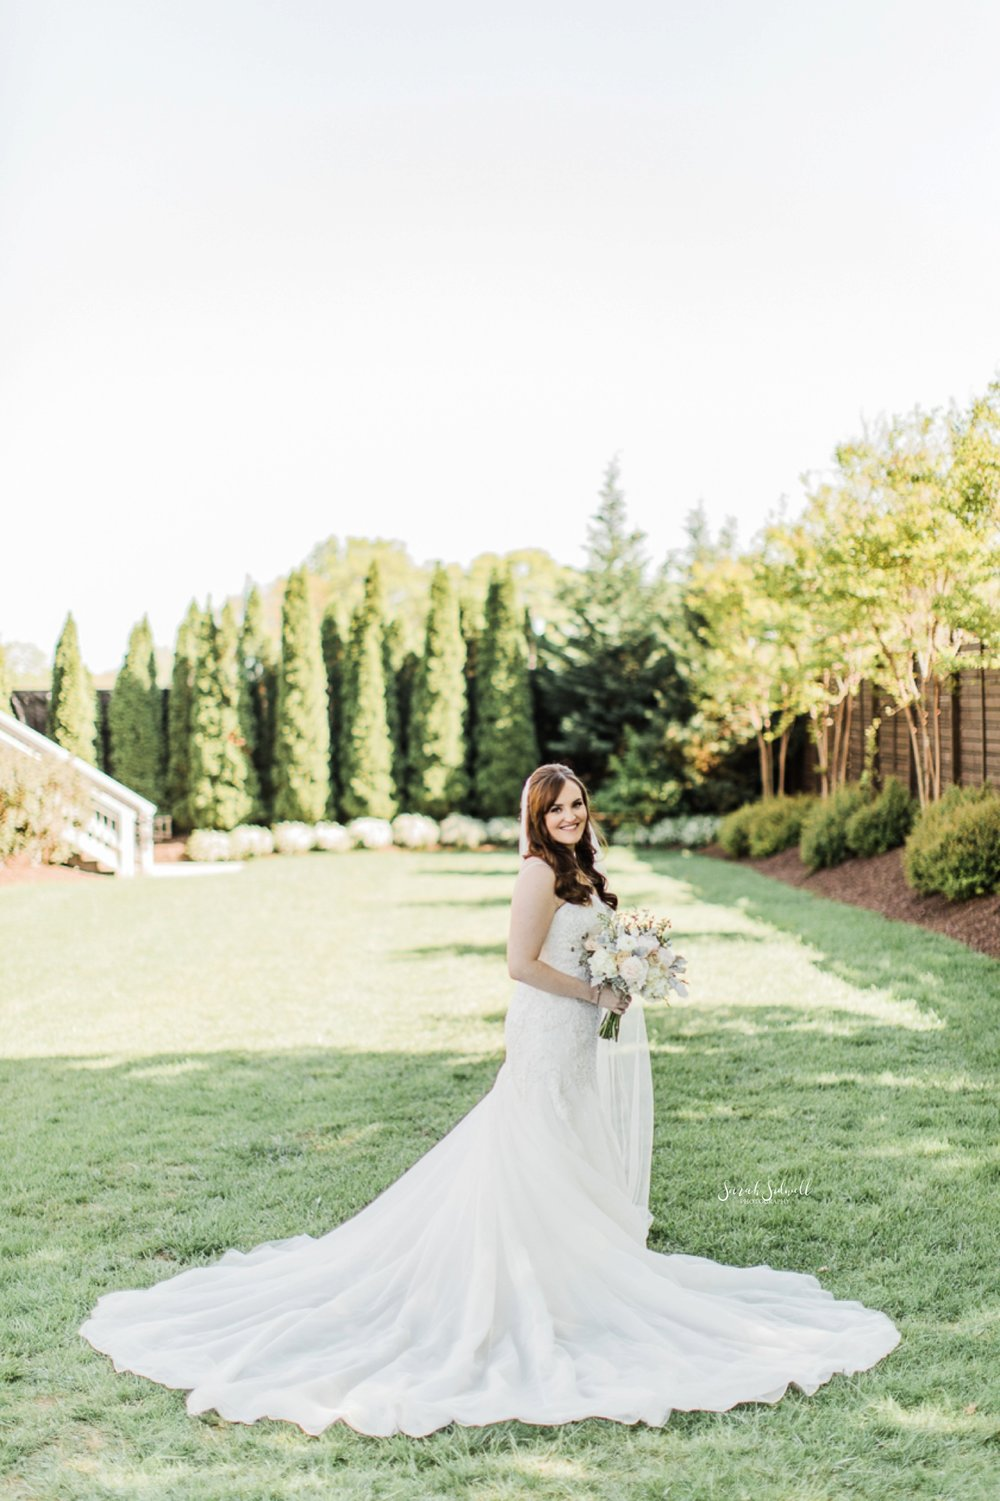 A bride stands in a green field with her dress spread out.